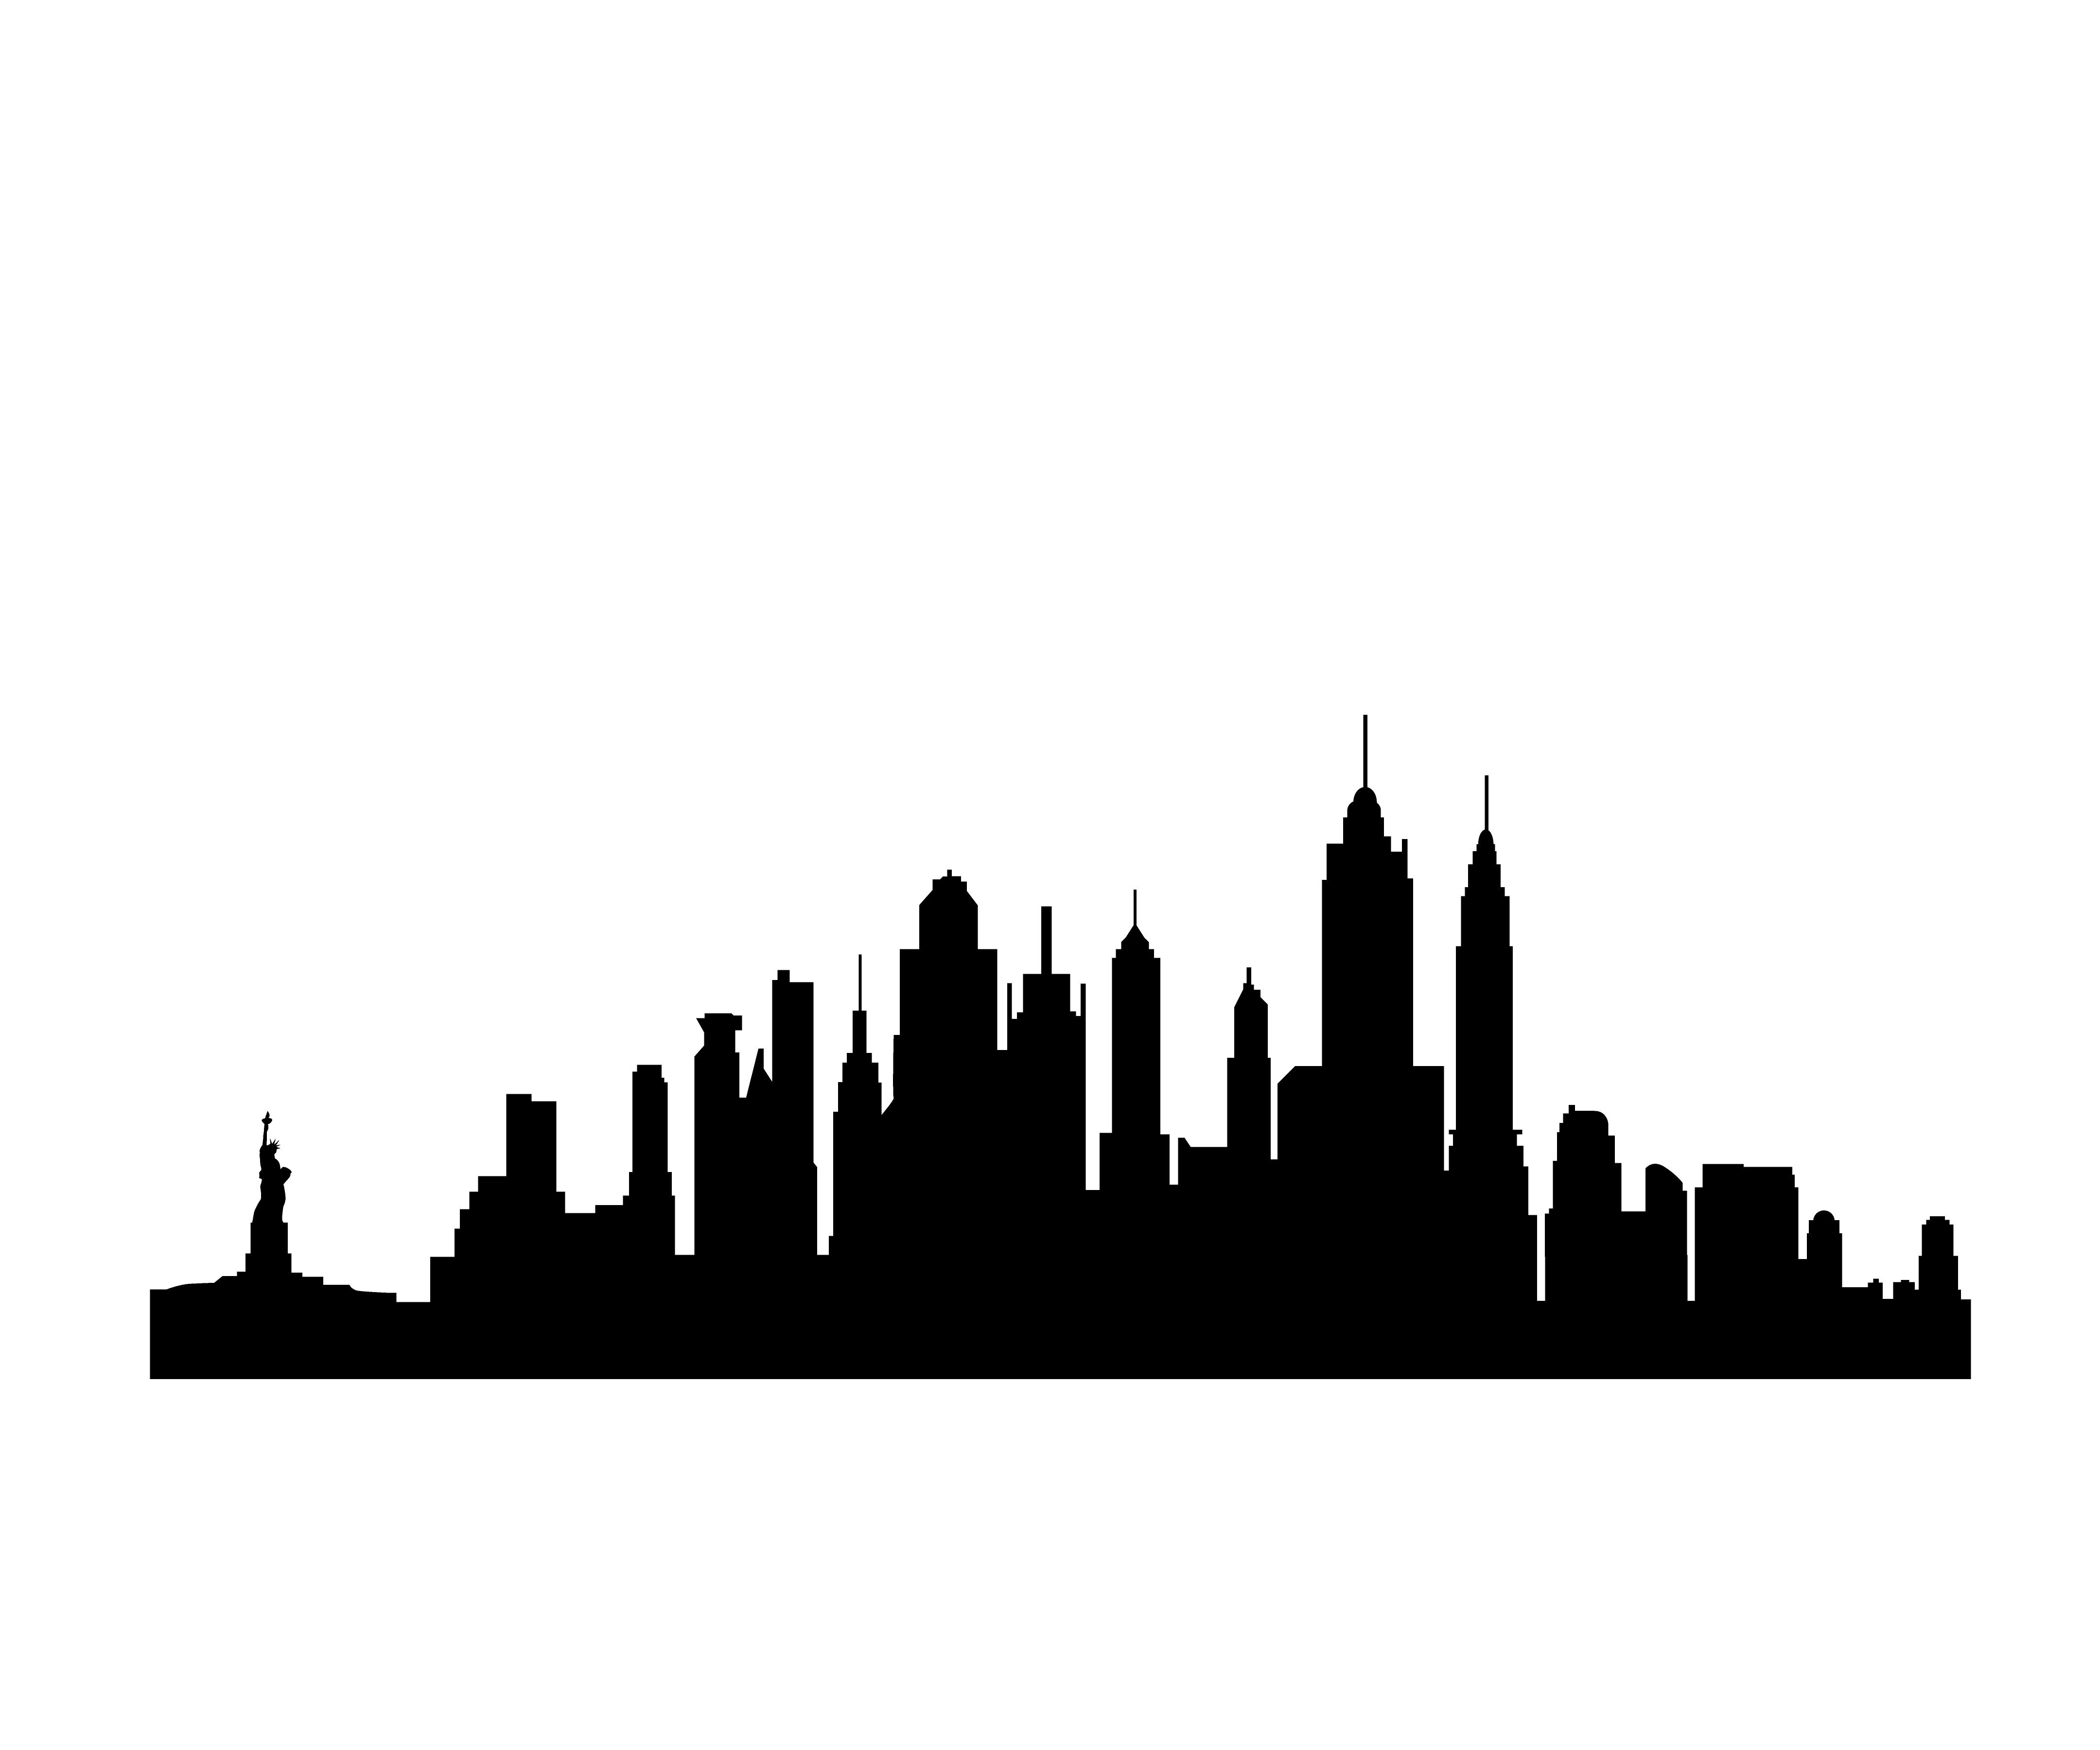 New York Skyline Silhouette - Vinyl Wall Art Decal for Homes ... - ClipArt